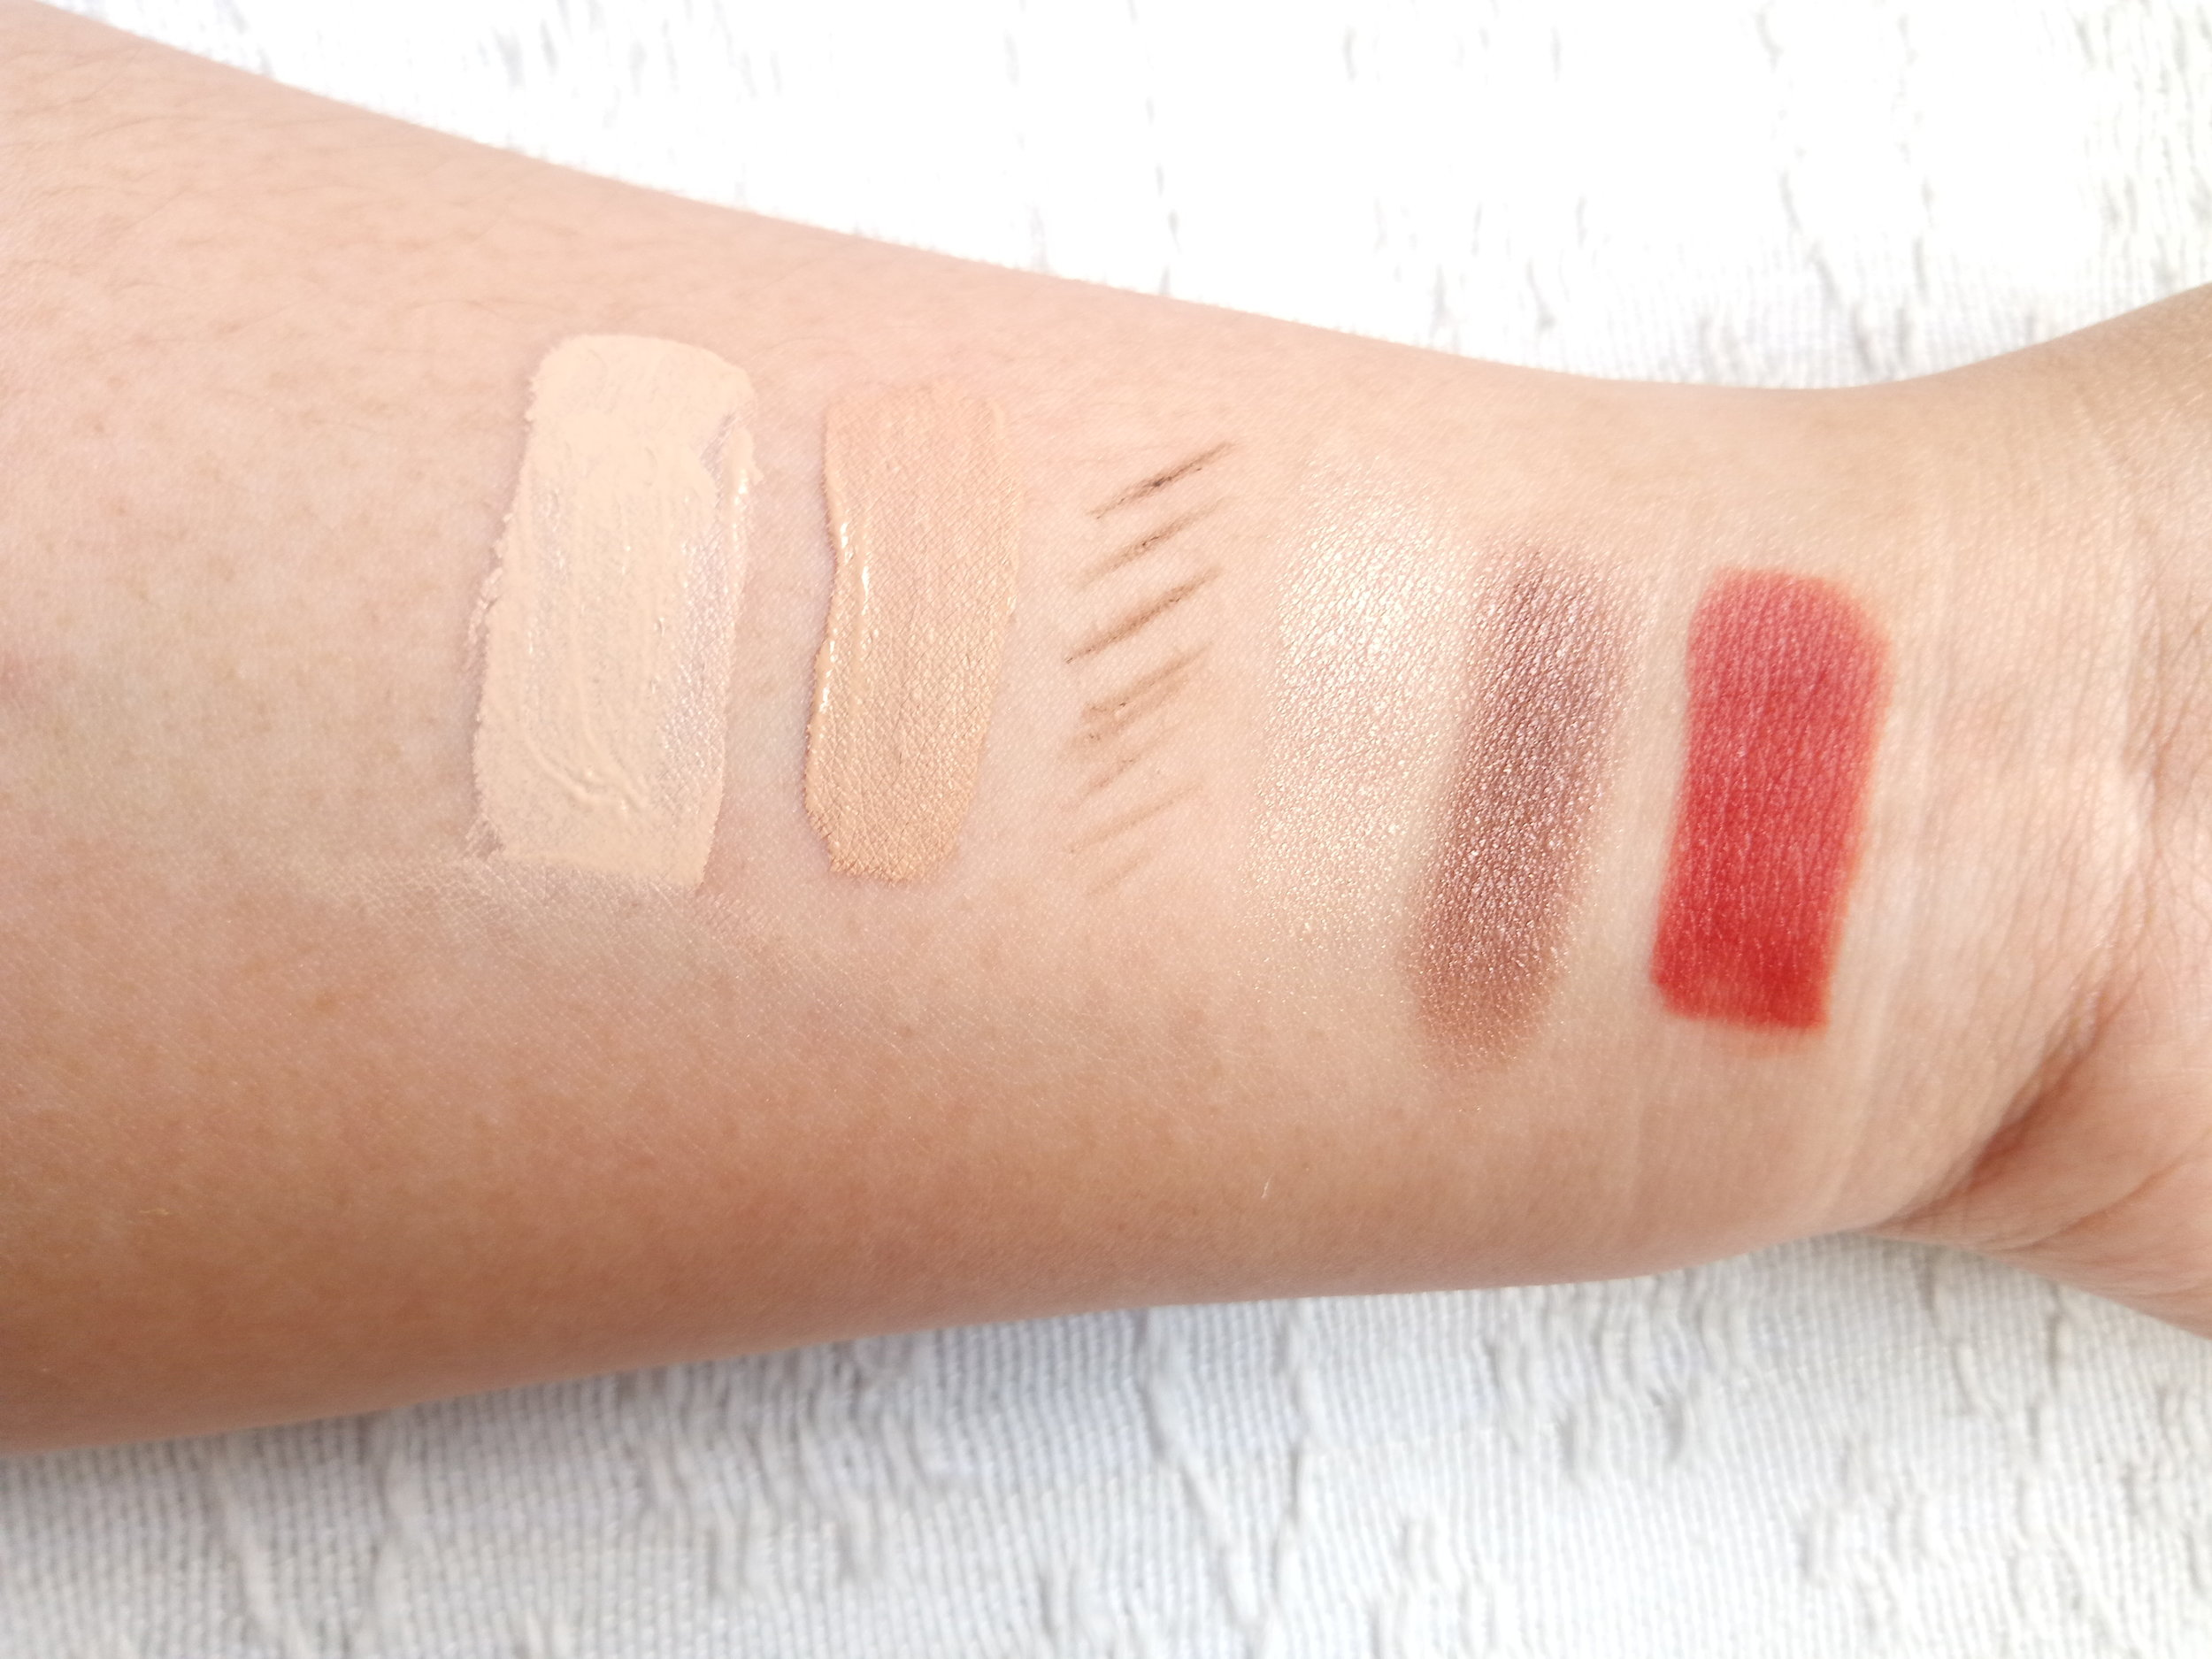 Swatches, from left: Photo Blur BB Cream, Liquid Veil Concealer (N203), Lovely Me:Ex Style My Eyebrow (02 Black Brown), Mono Cube Eyeshadow (BR04 Chai Tea Chocolate), Finger Cotton Tint (08 Brown-presso)